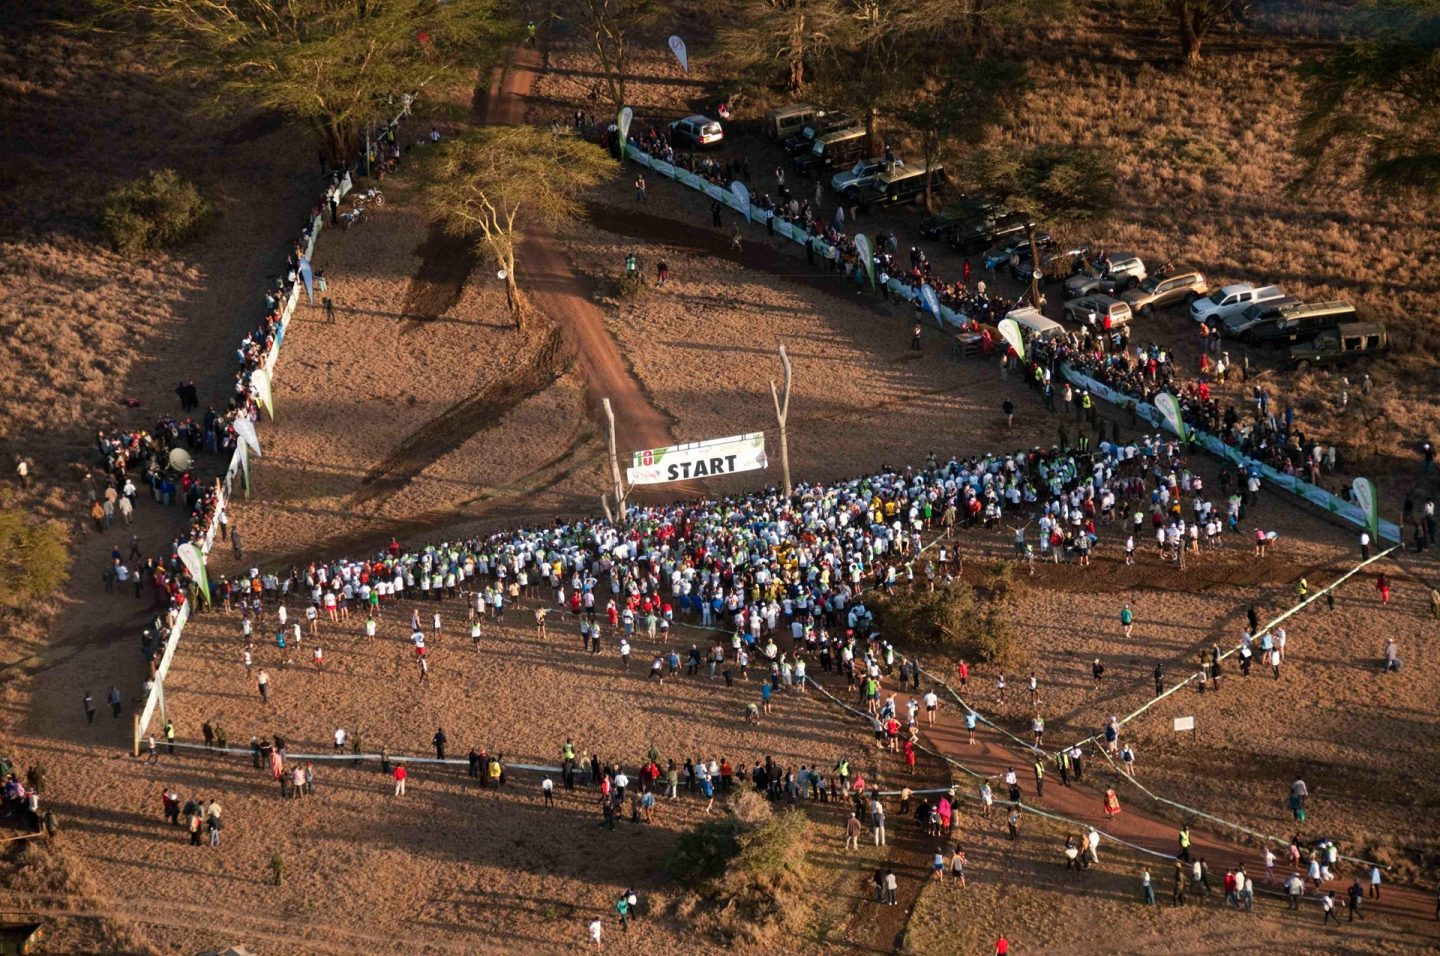 Safaricom Marathon Aerial of Start